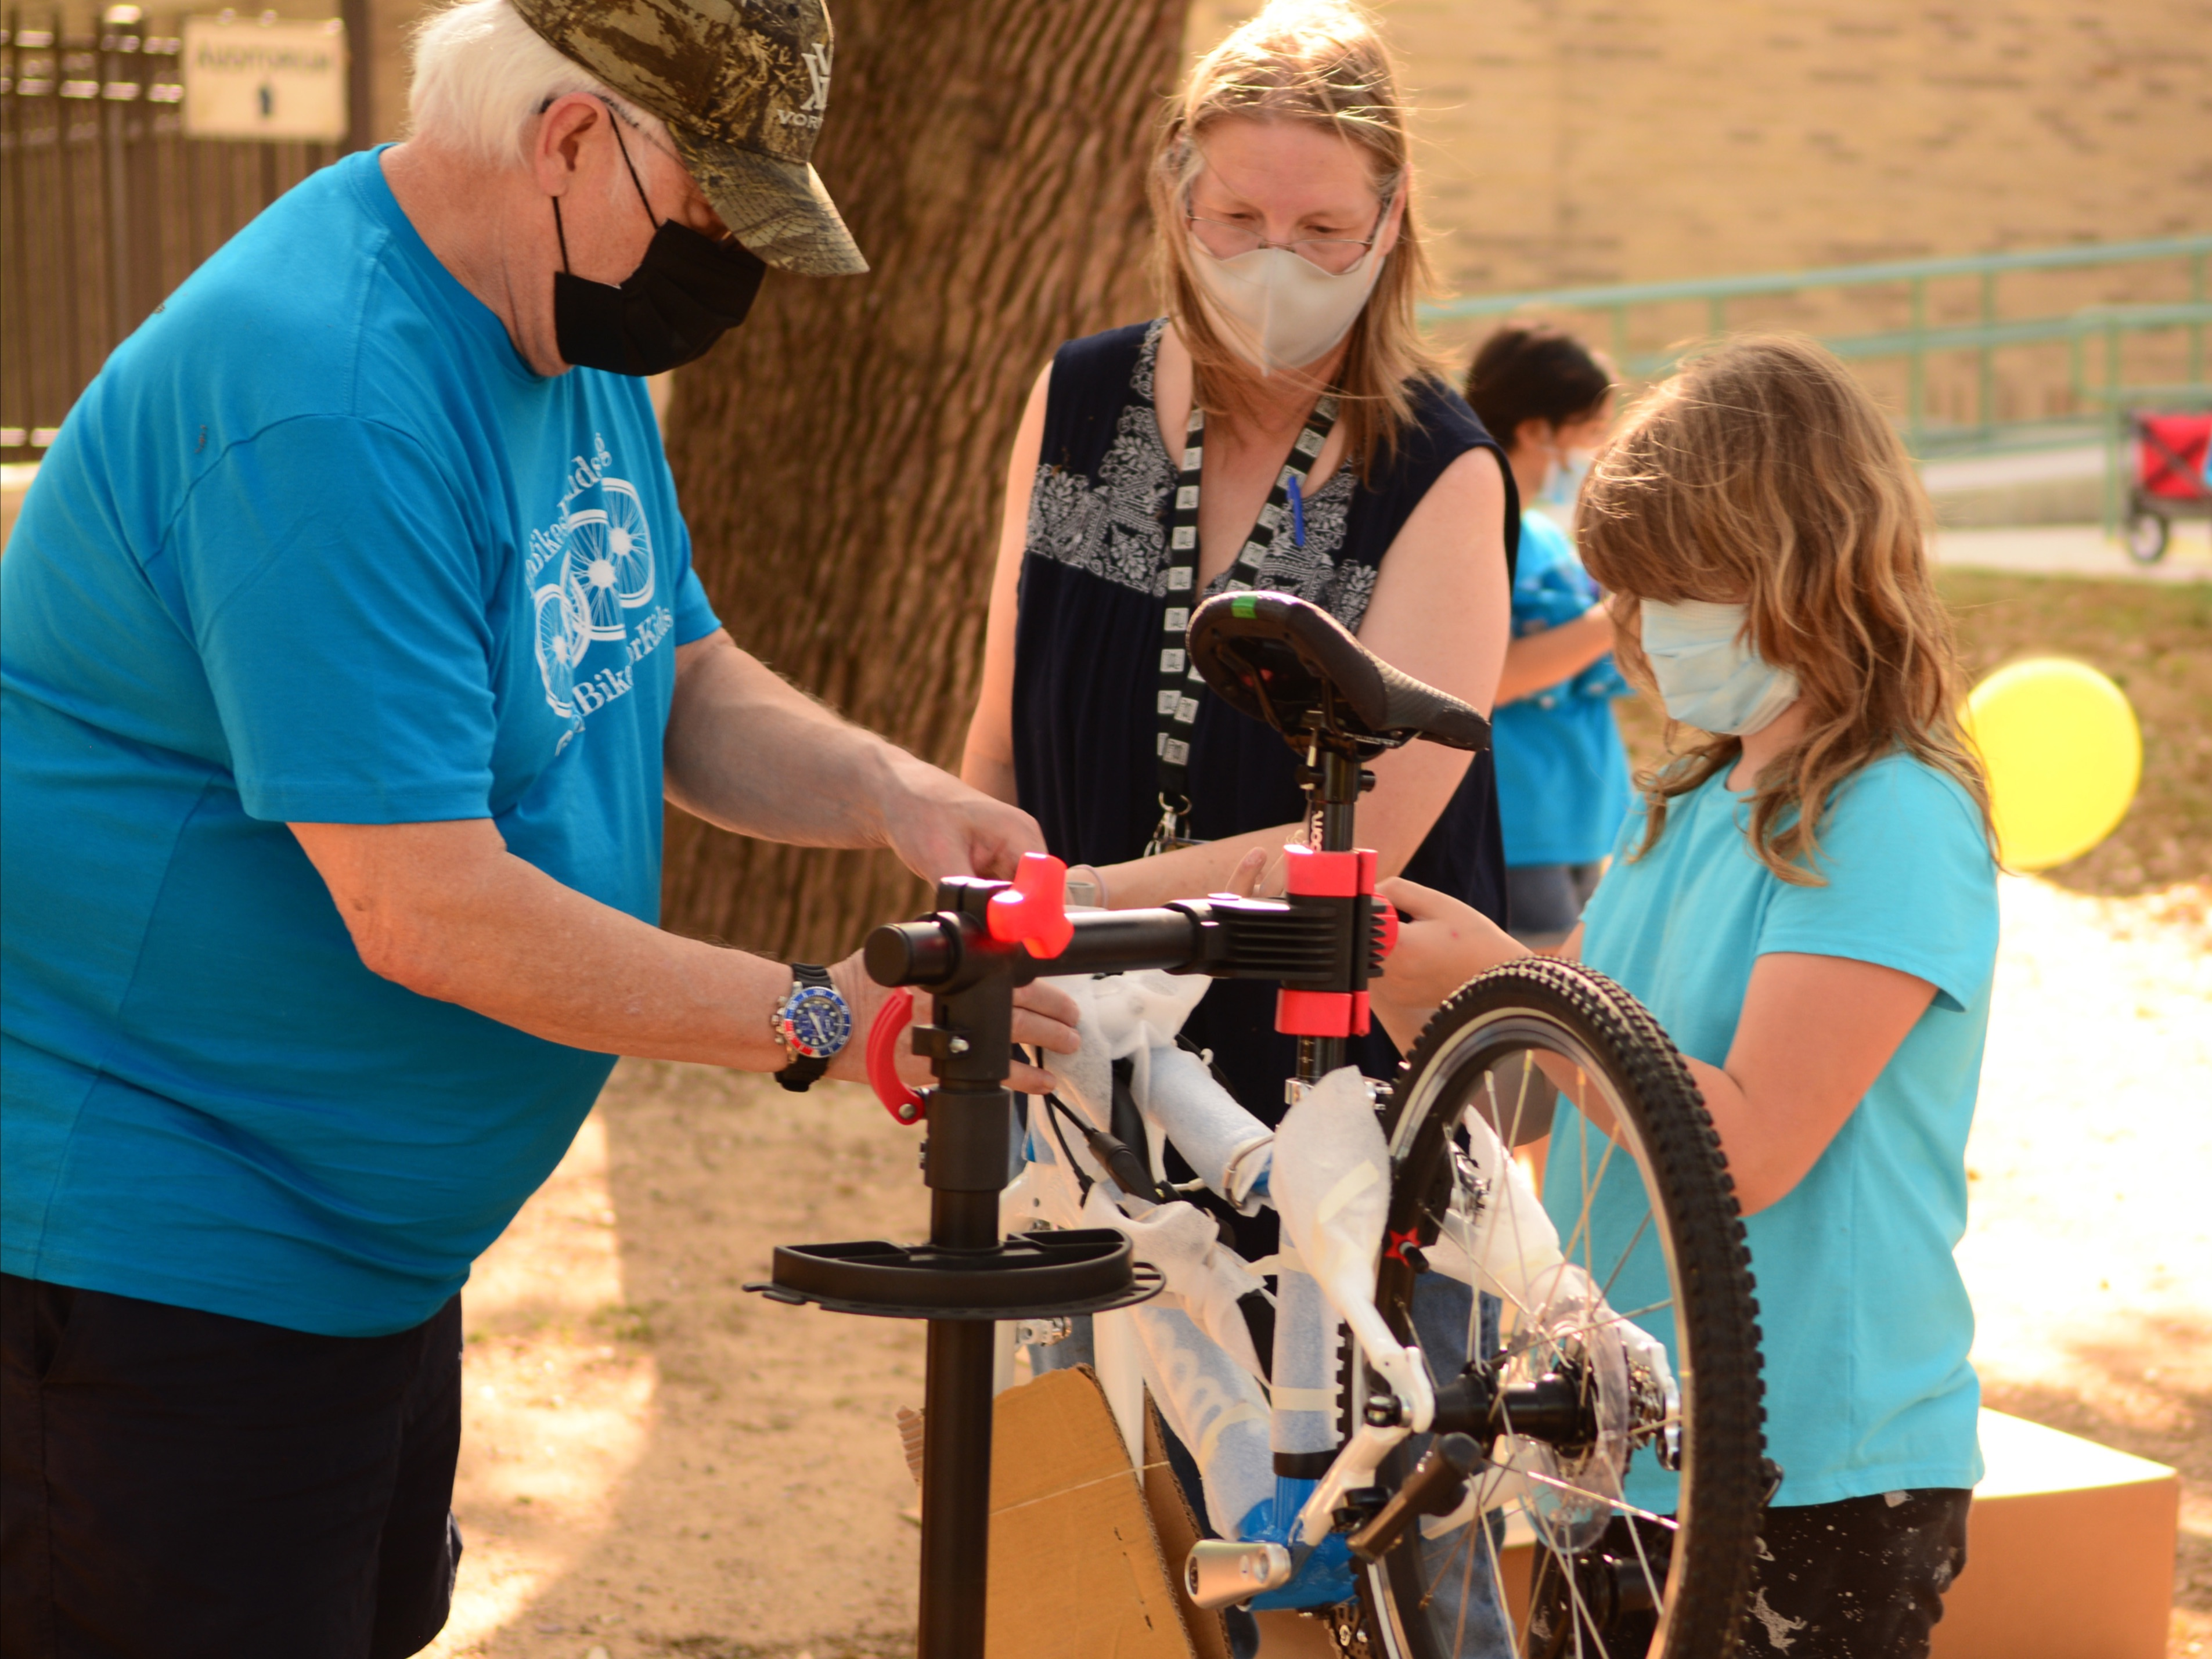 An older man helps a young TSD student, Tessa C., assemble a bike while another woman watches them work.